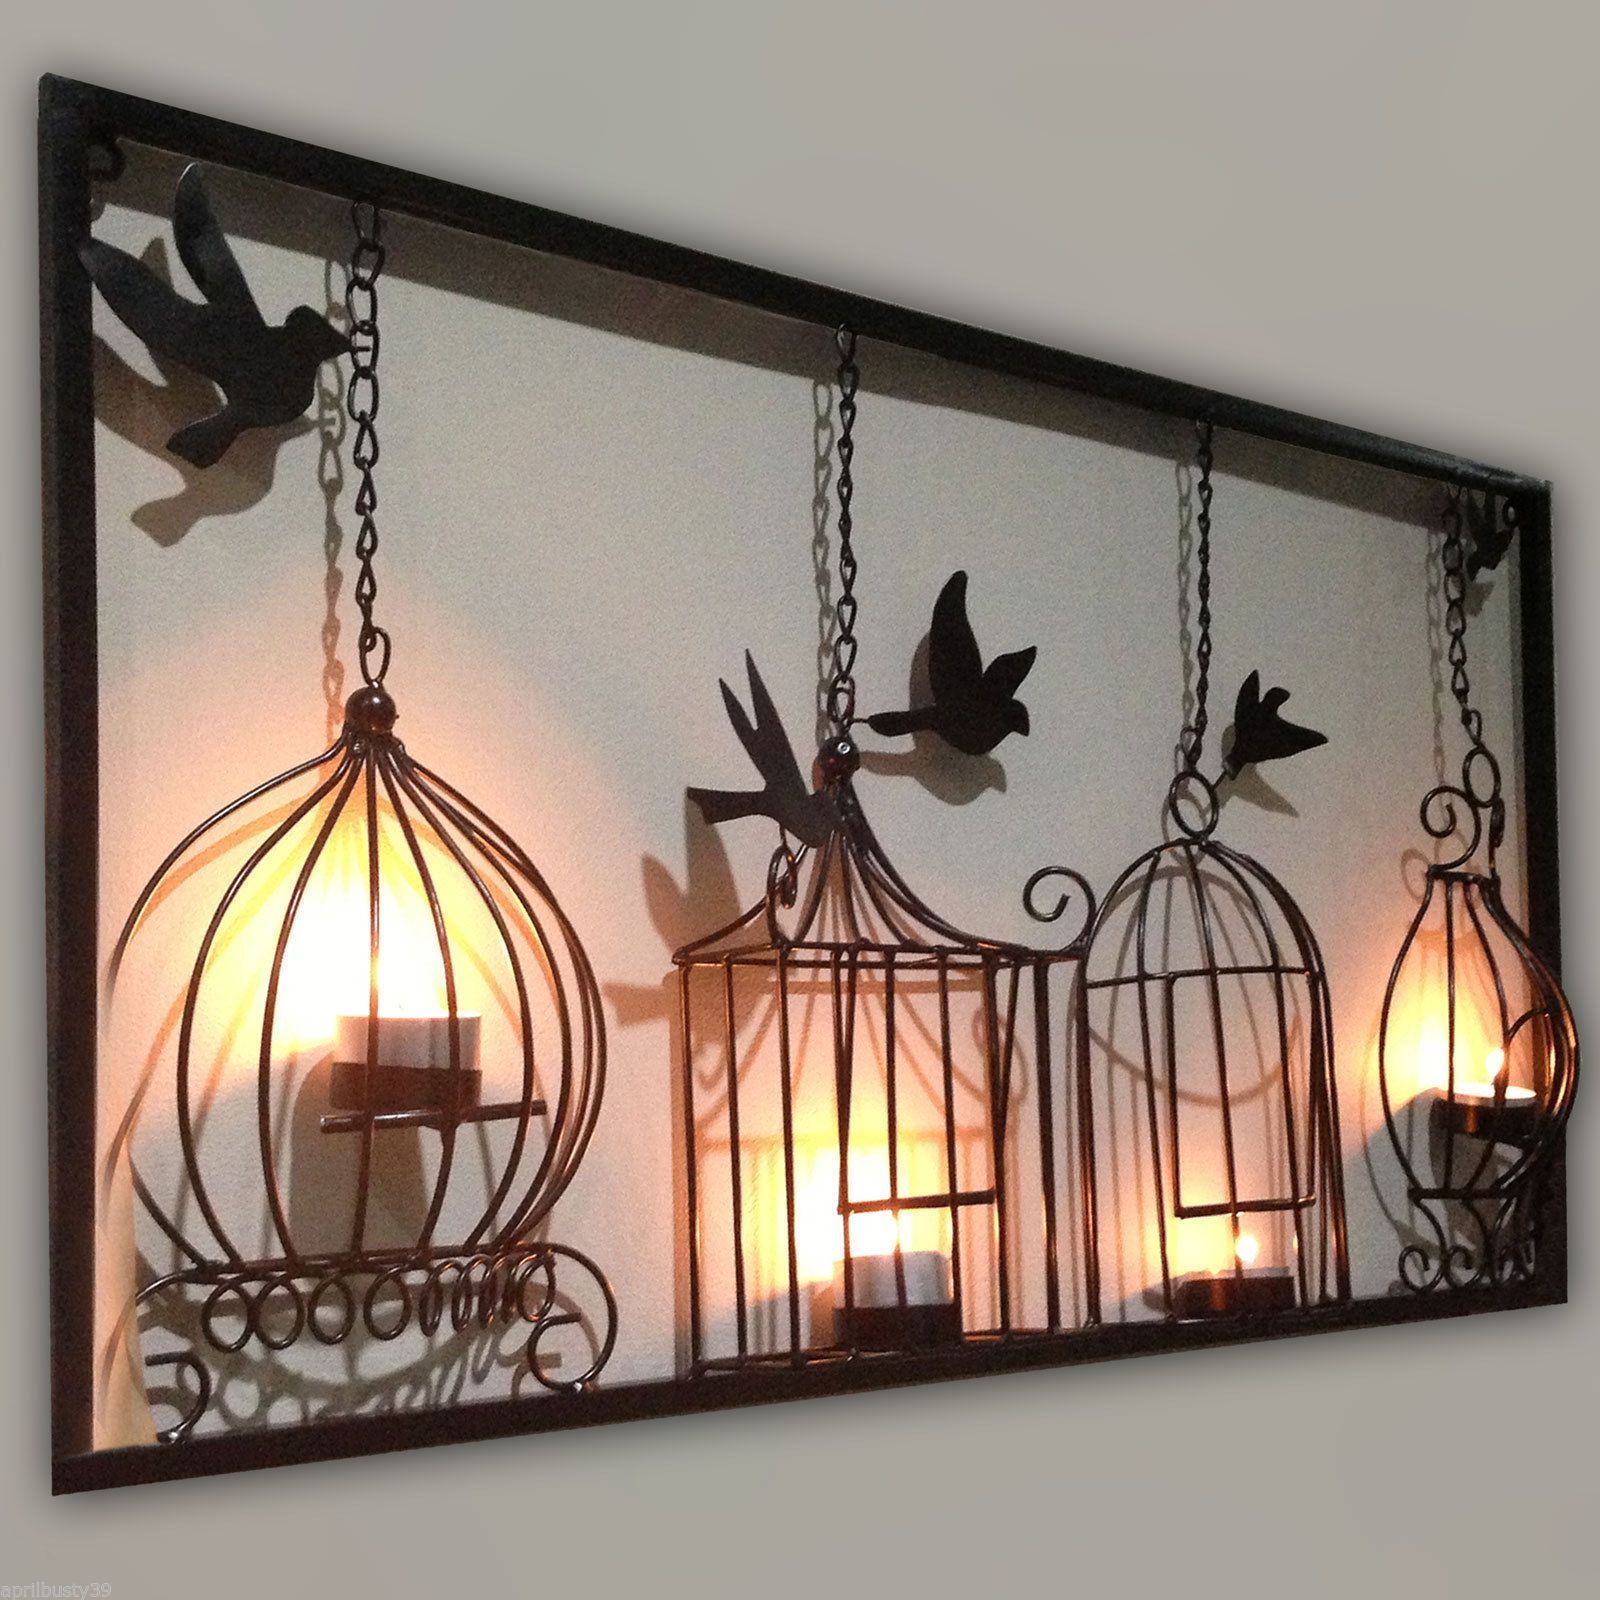 Black Wrought Iron Wall Decor Enchanting Birdcage Tea Light Wall Art Metal Wall Hanging Candle Holder Black Design Ideas